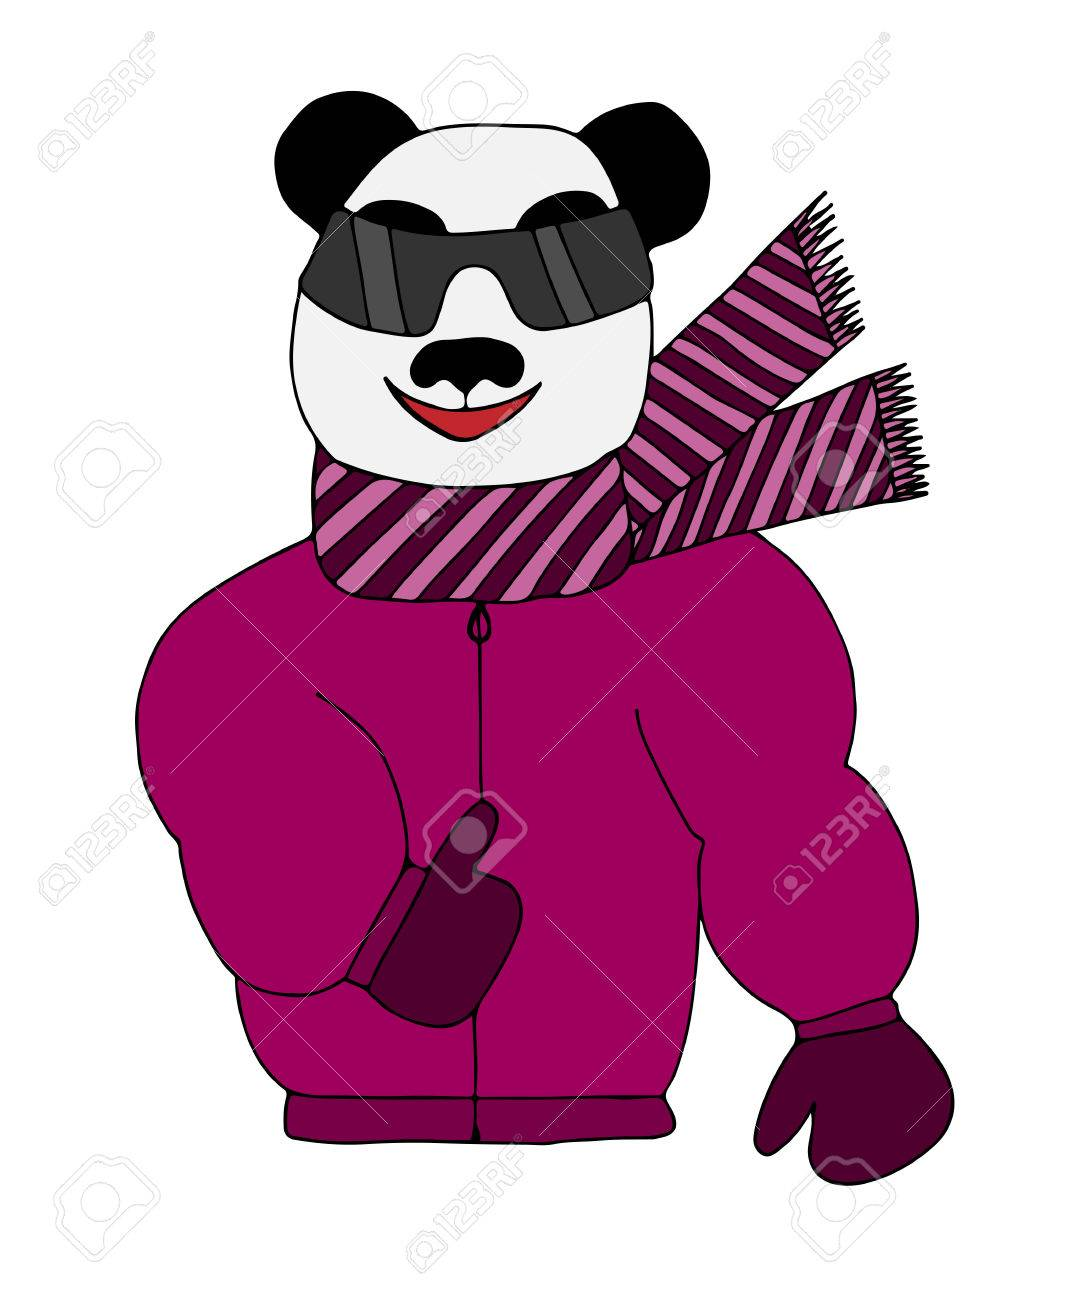 colorful panda is sun glasses in a winter jacket and scarf art